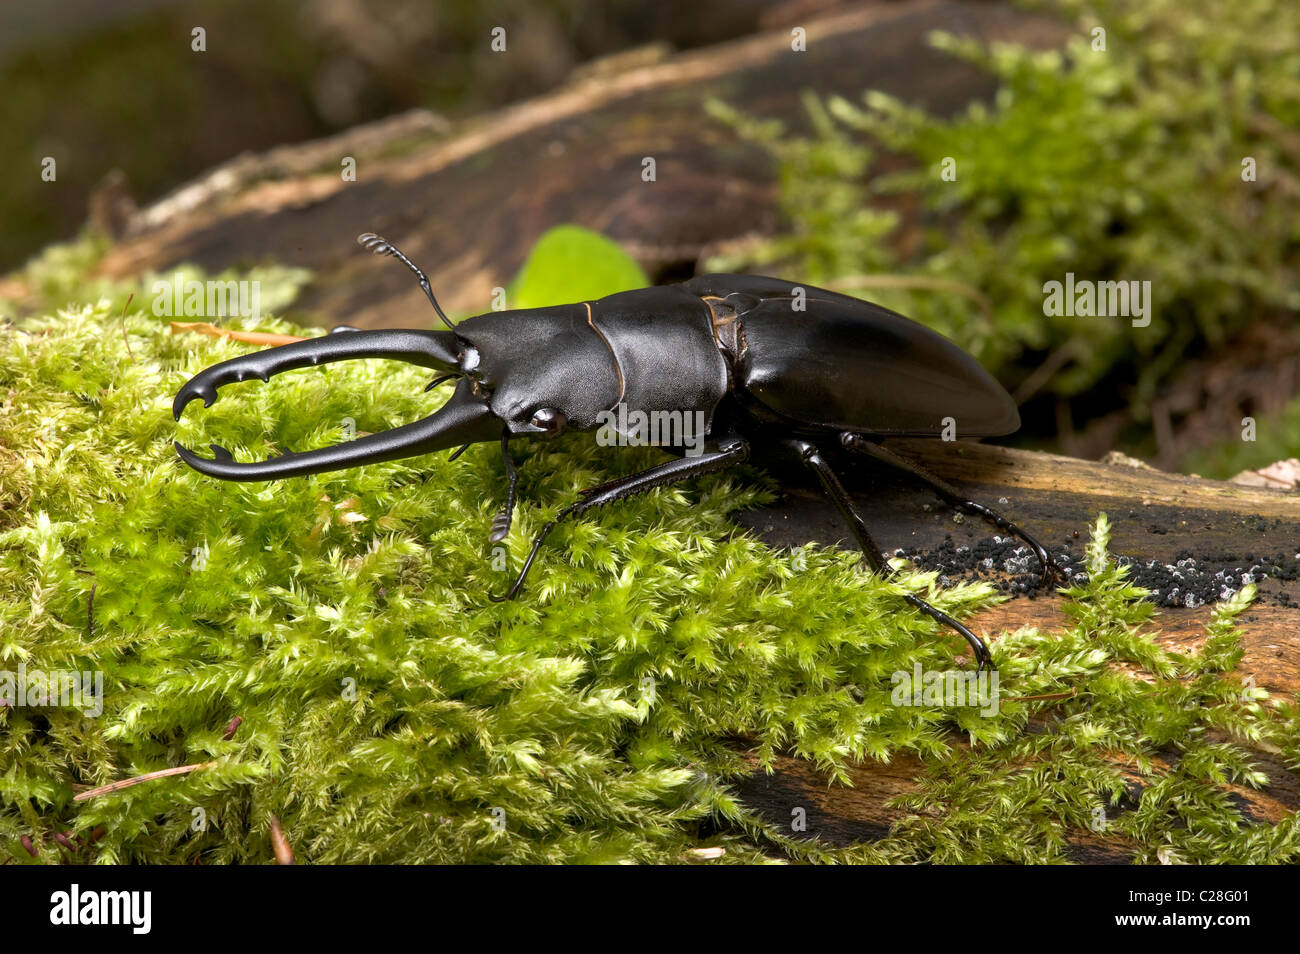 Giraffe Stag-Beetle (Prosopocoilus giraffa), adult male on moss. - Stock Image